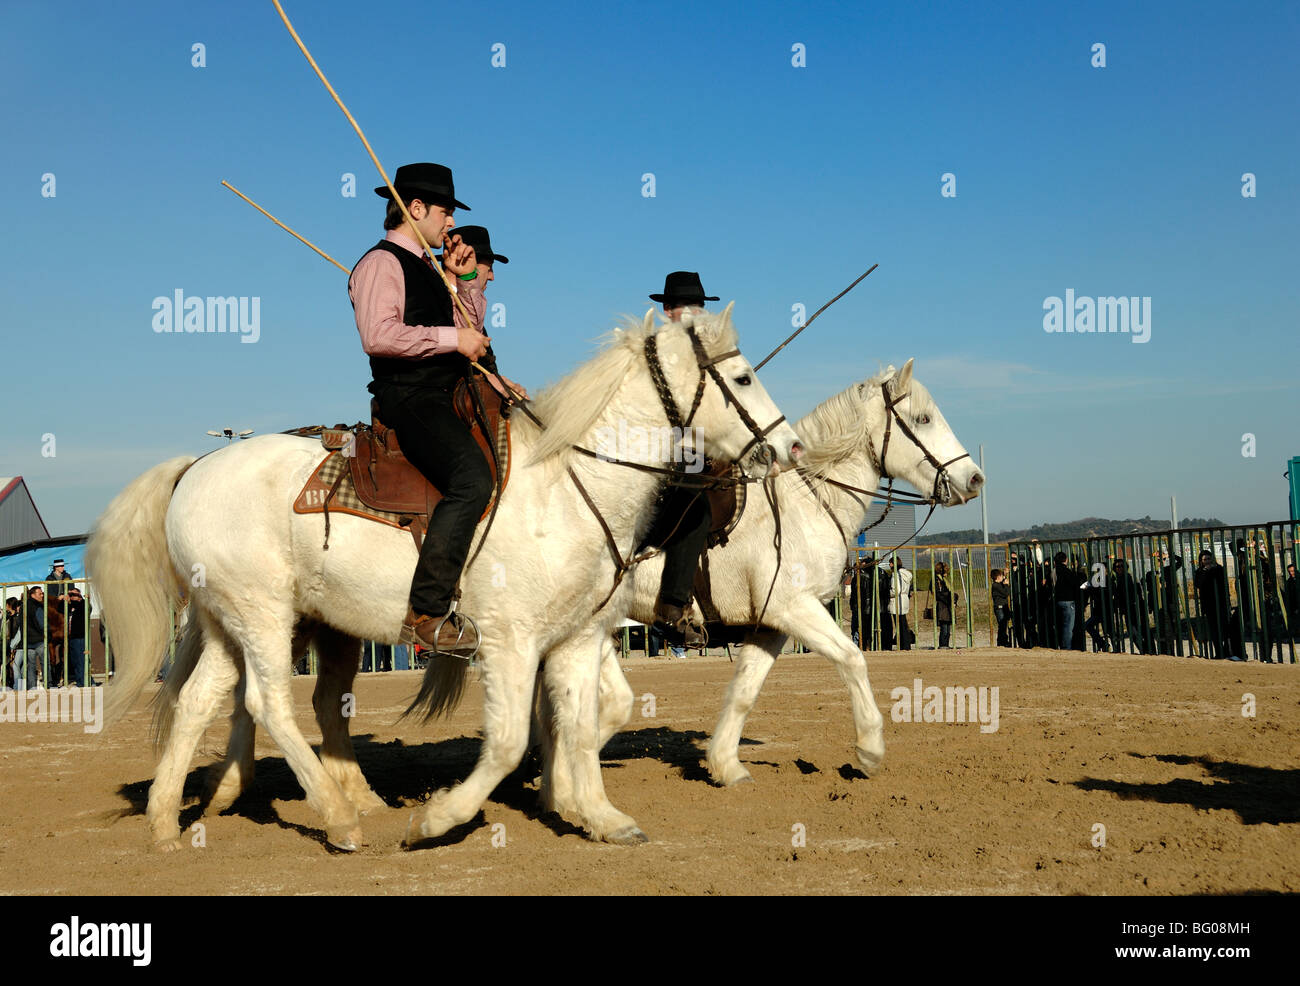 9d50fdcca9a Camargue Horse Riders known as  Guardians  or Provencal Cowboys Riding  White Camargue Horses